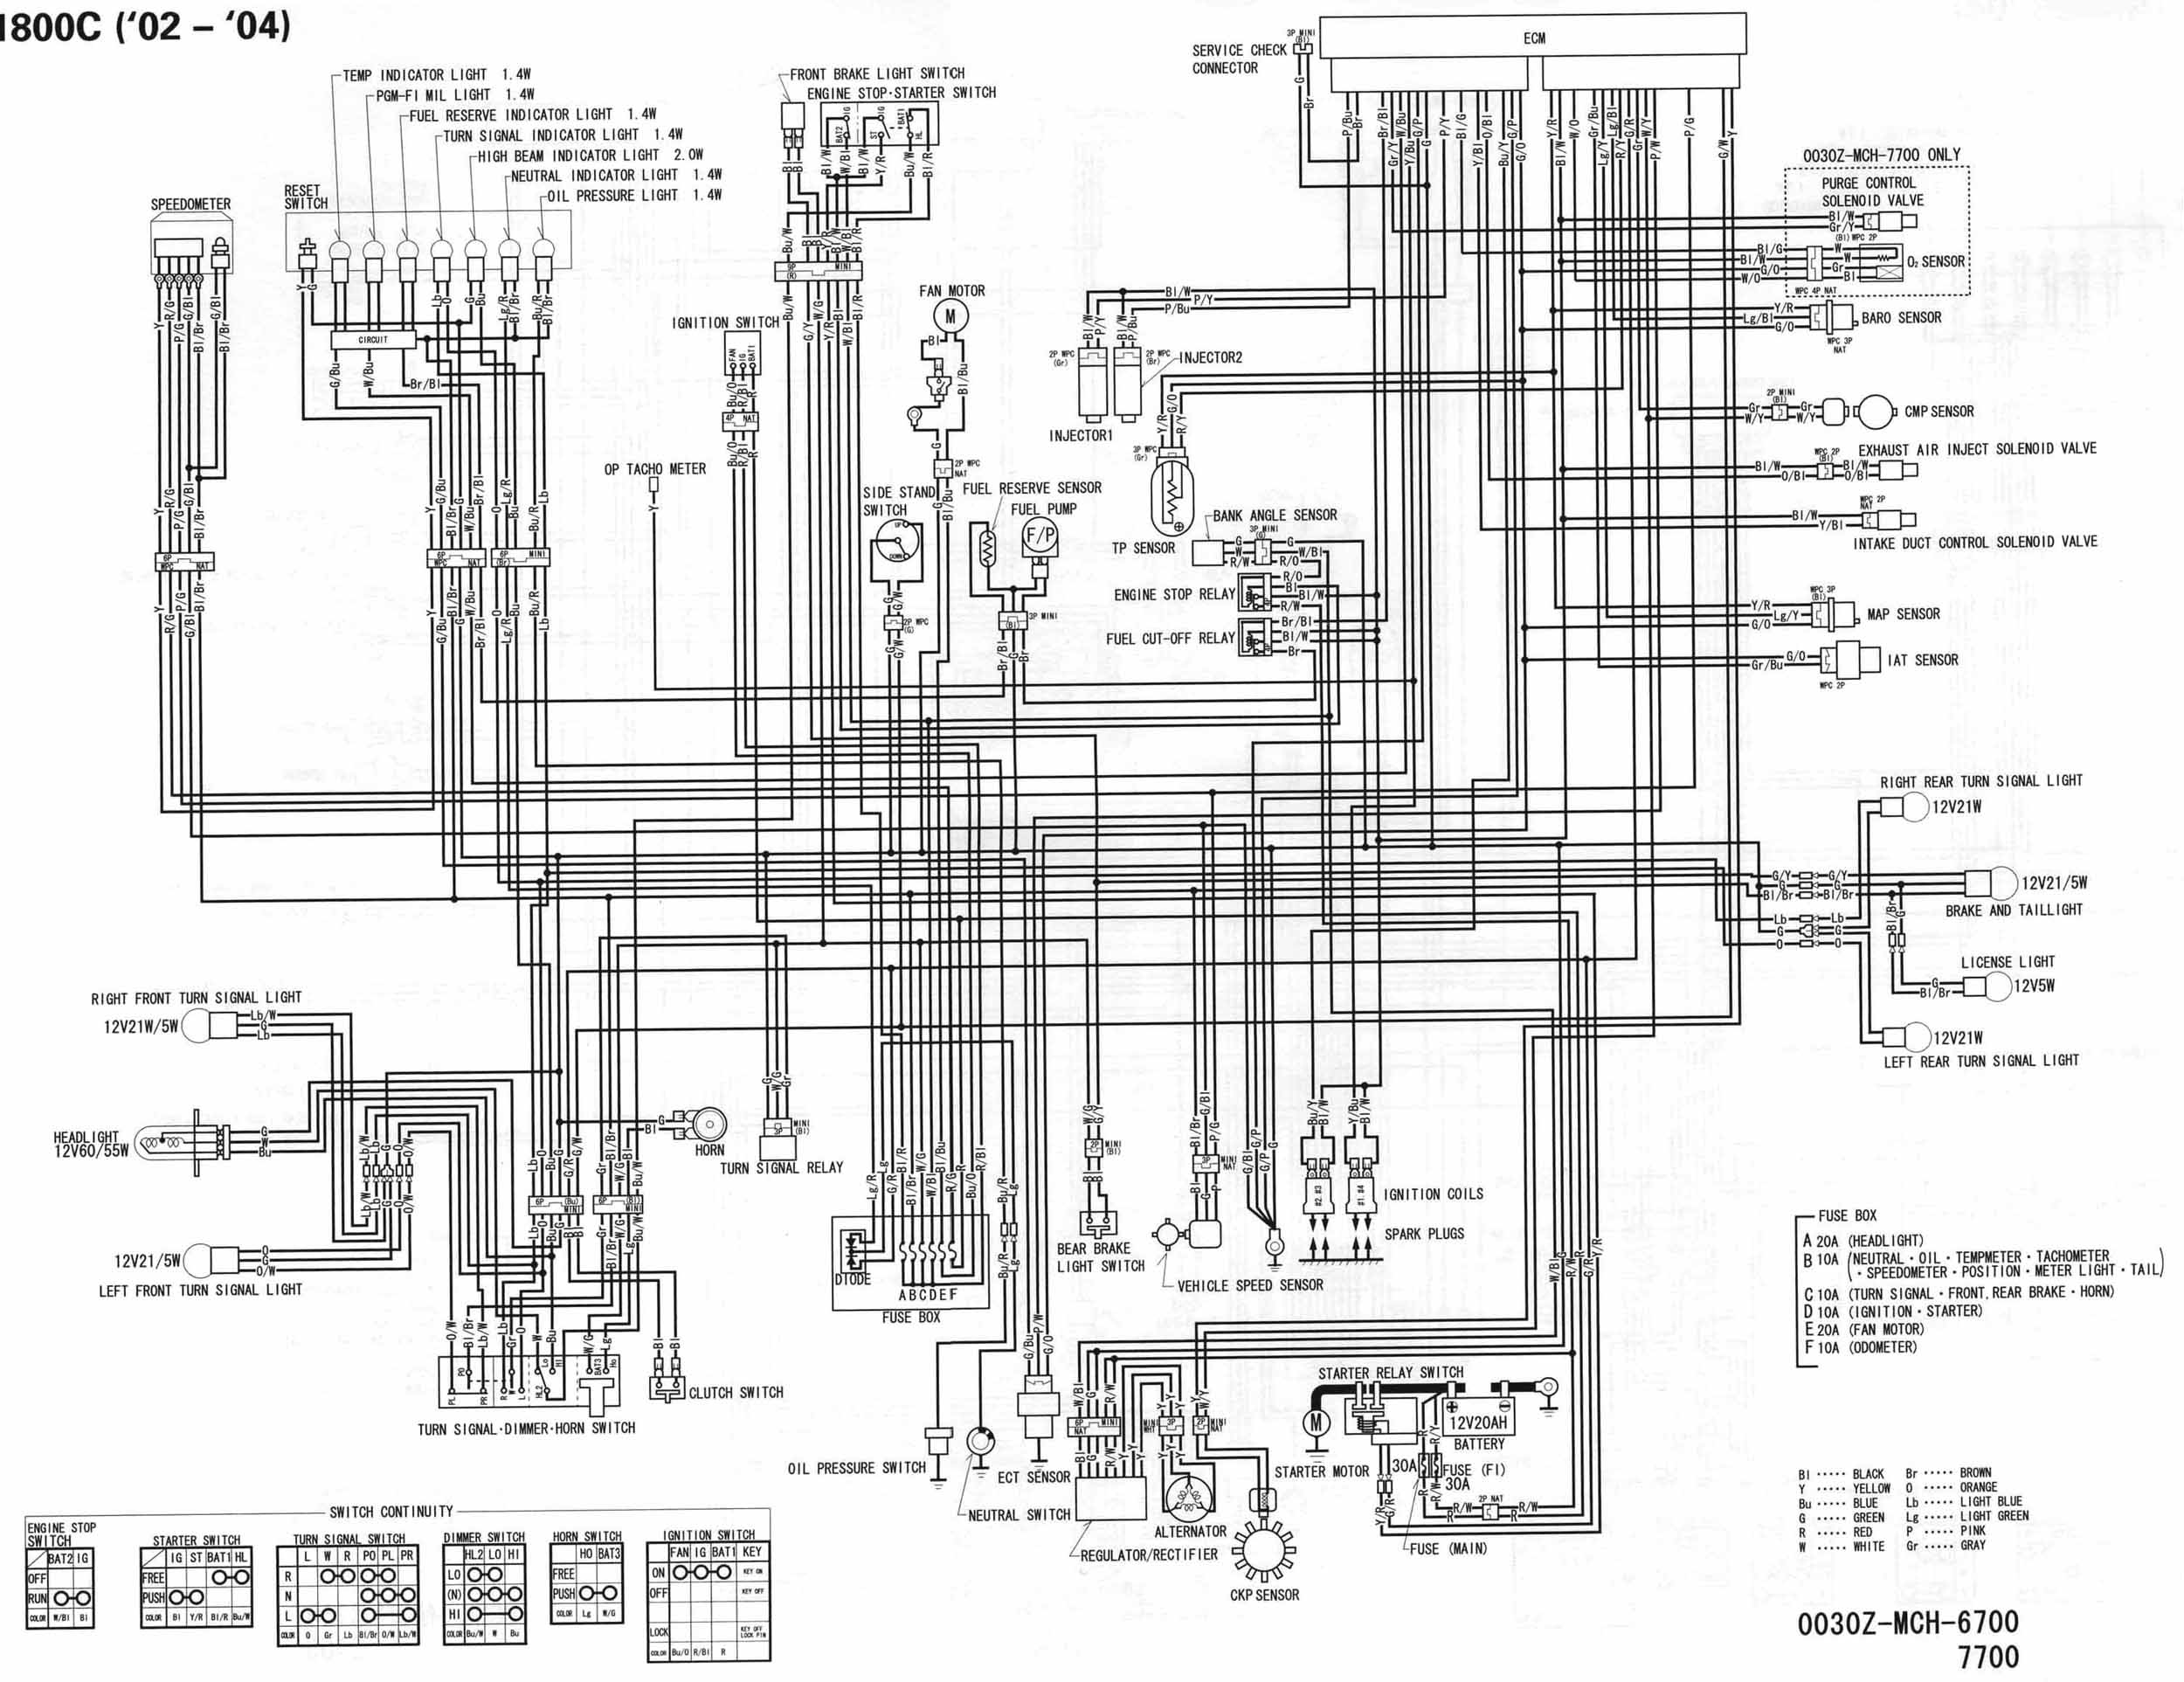 motorcycle wire schematics bareass choppers motorcycle tech pages 2008 honda  vtx 1300 wiring diagram 02 04